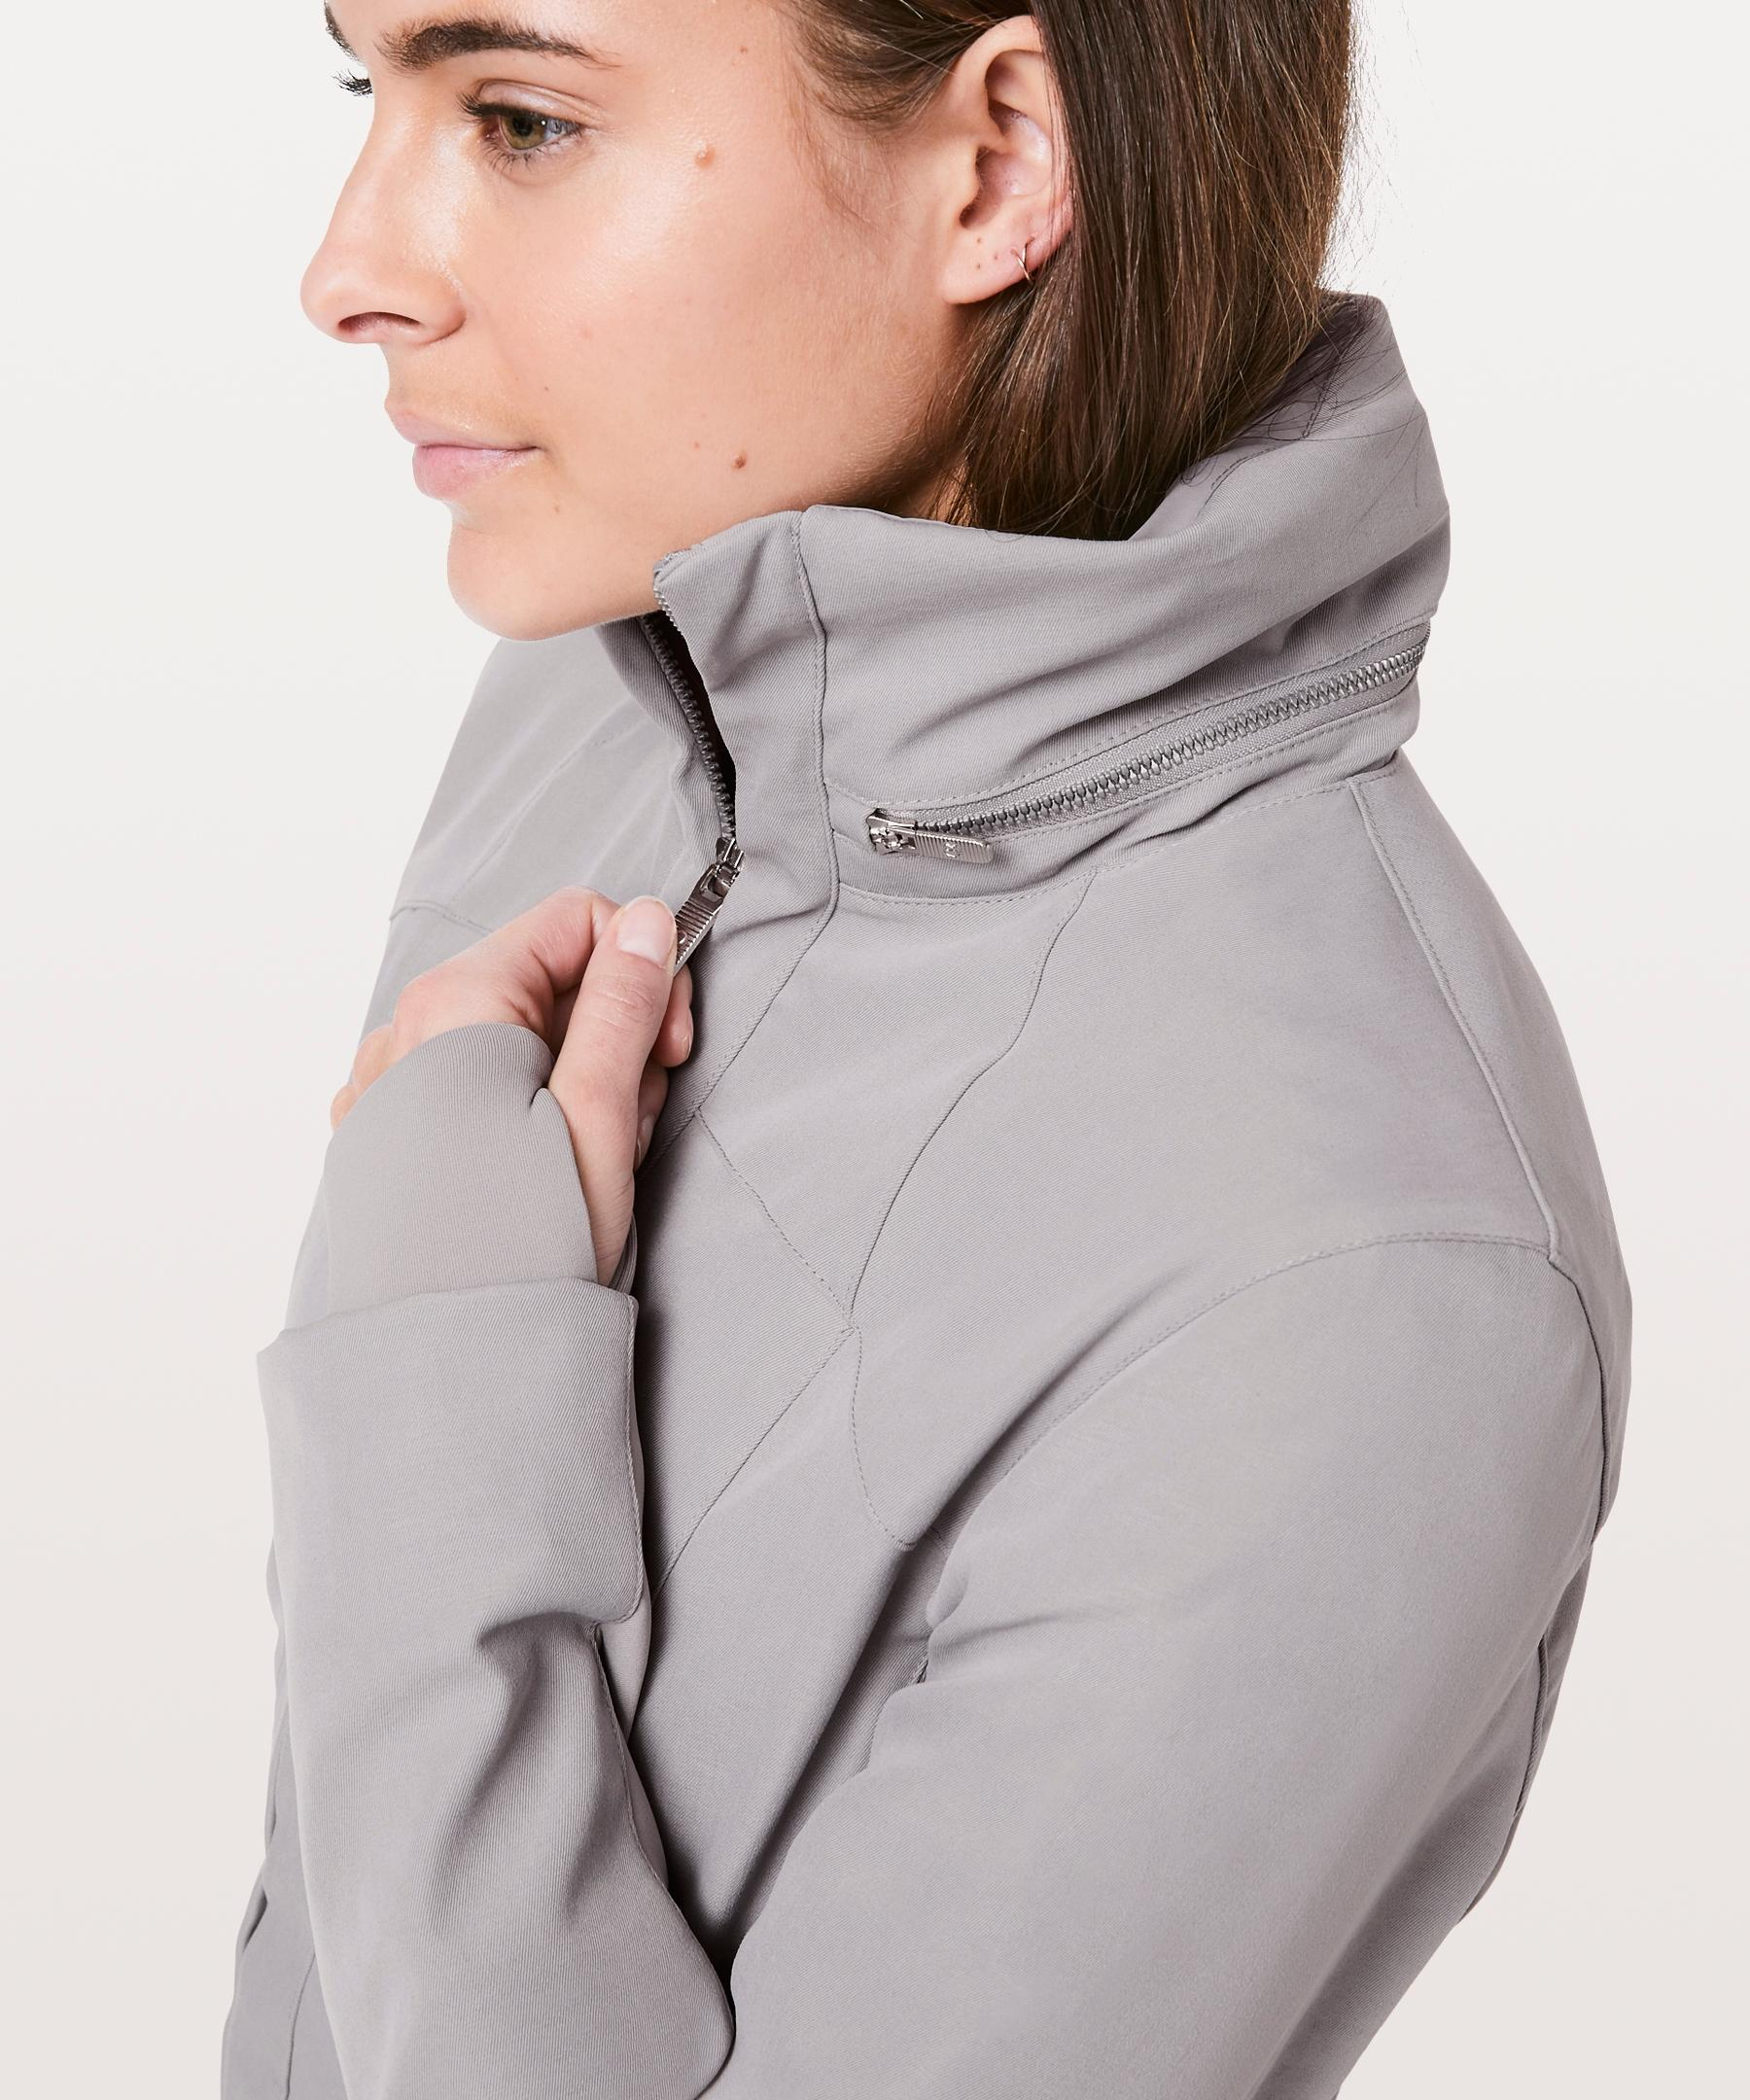 c3091241a2 Lyst - lululemon athletica Like A Glove Jacket in Gray